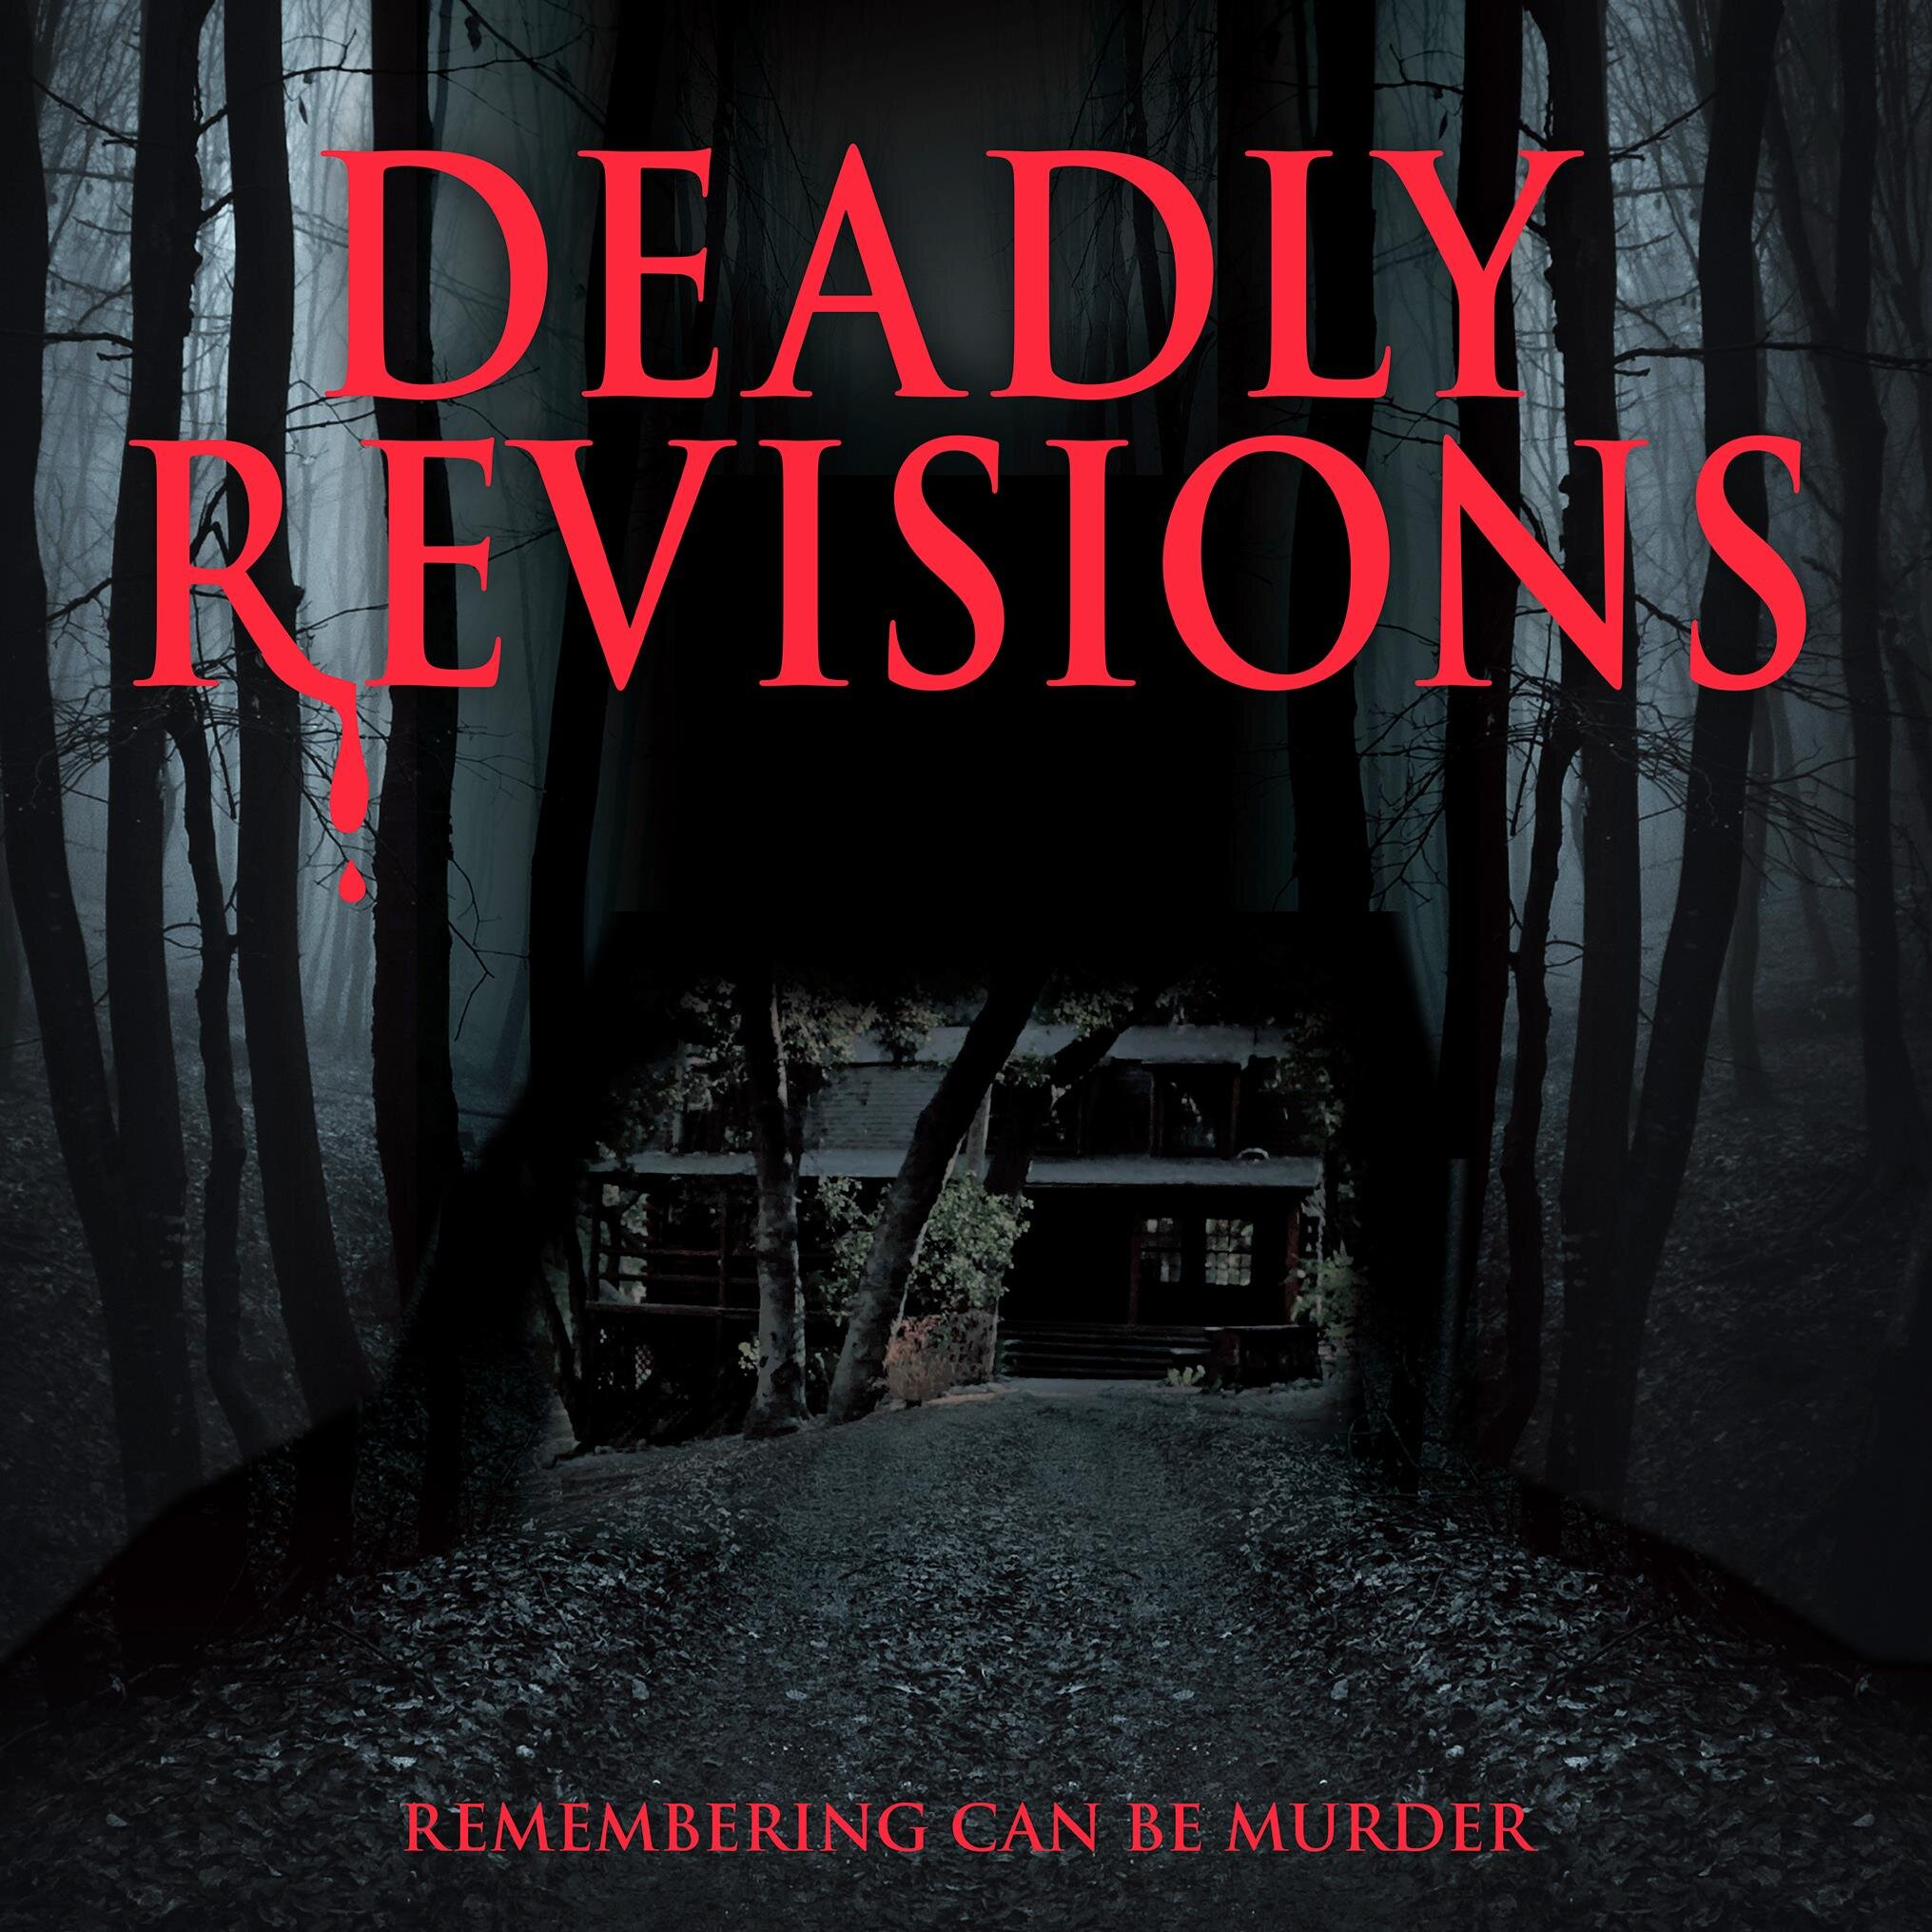 Deadly Revisions on Twitter: